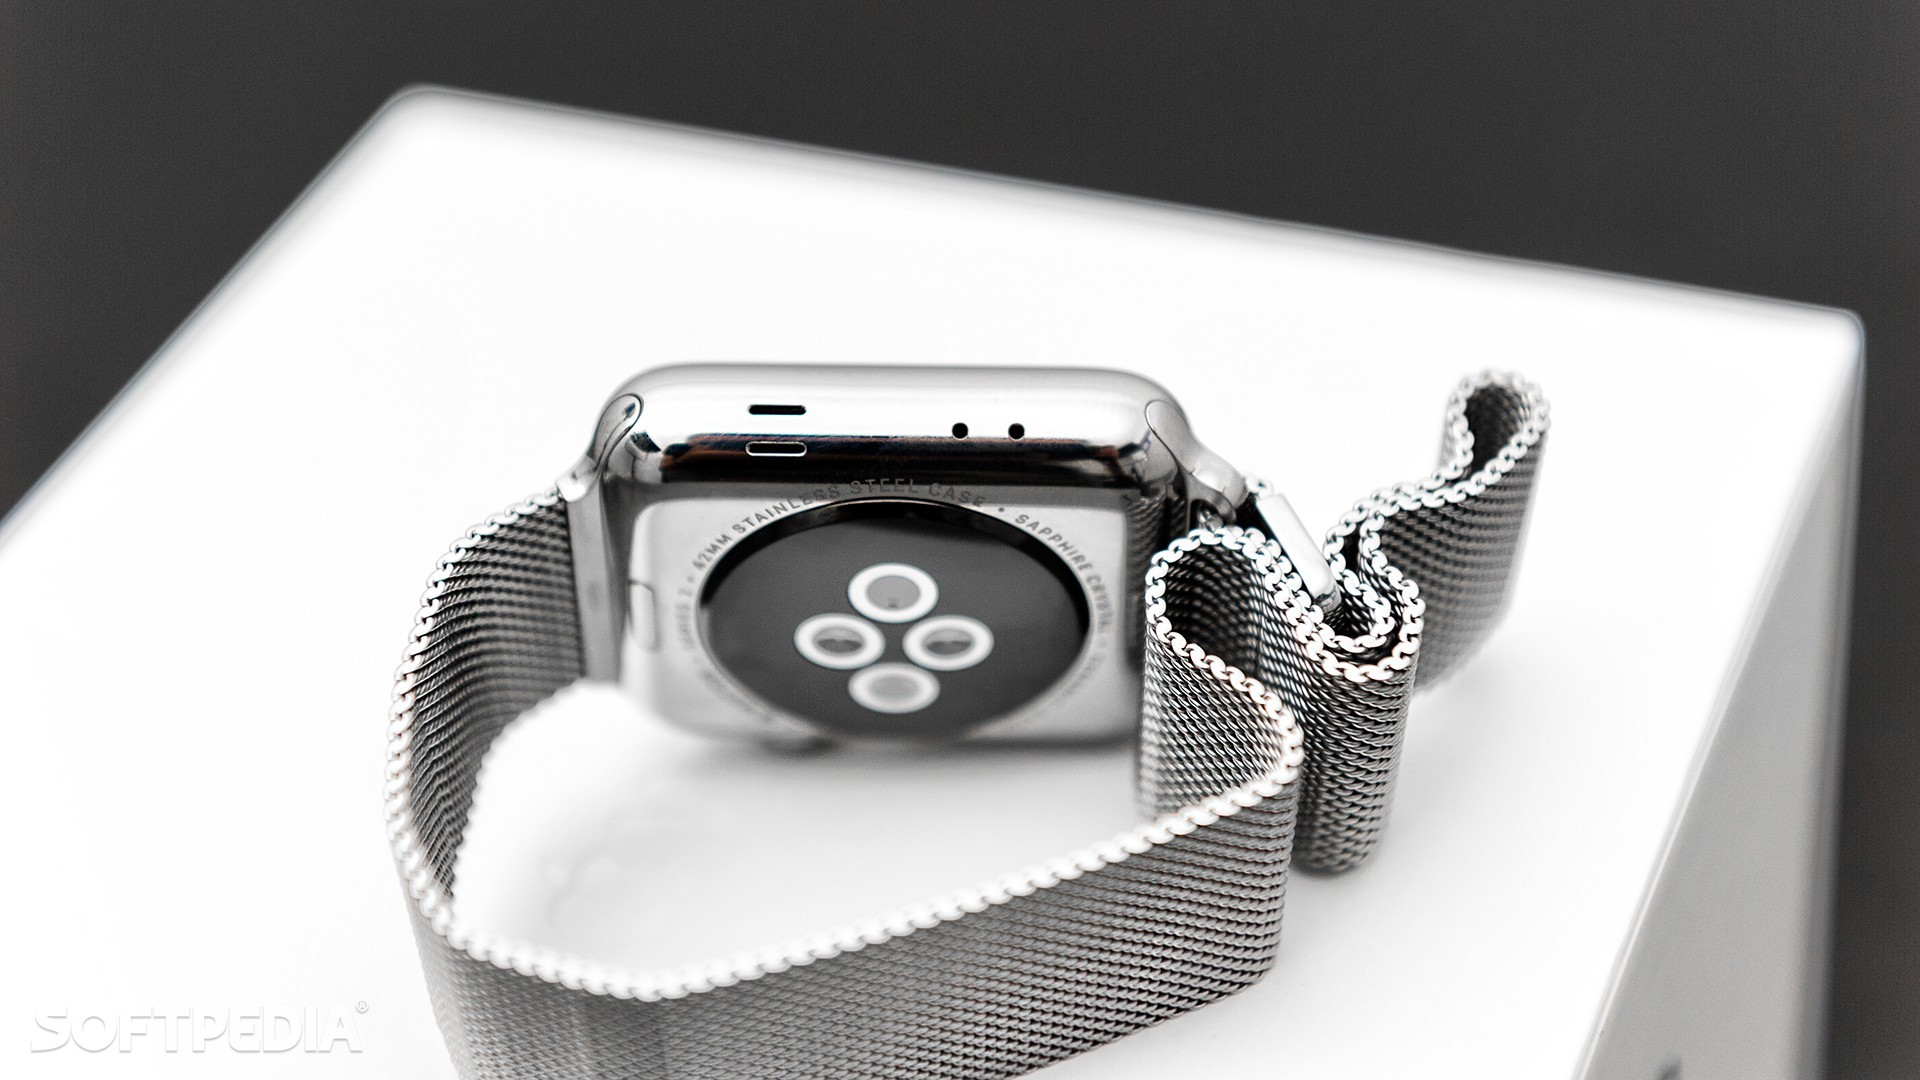 Apple Watch to use a microLED display